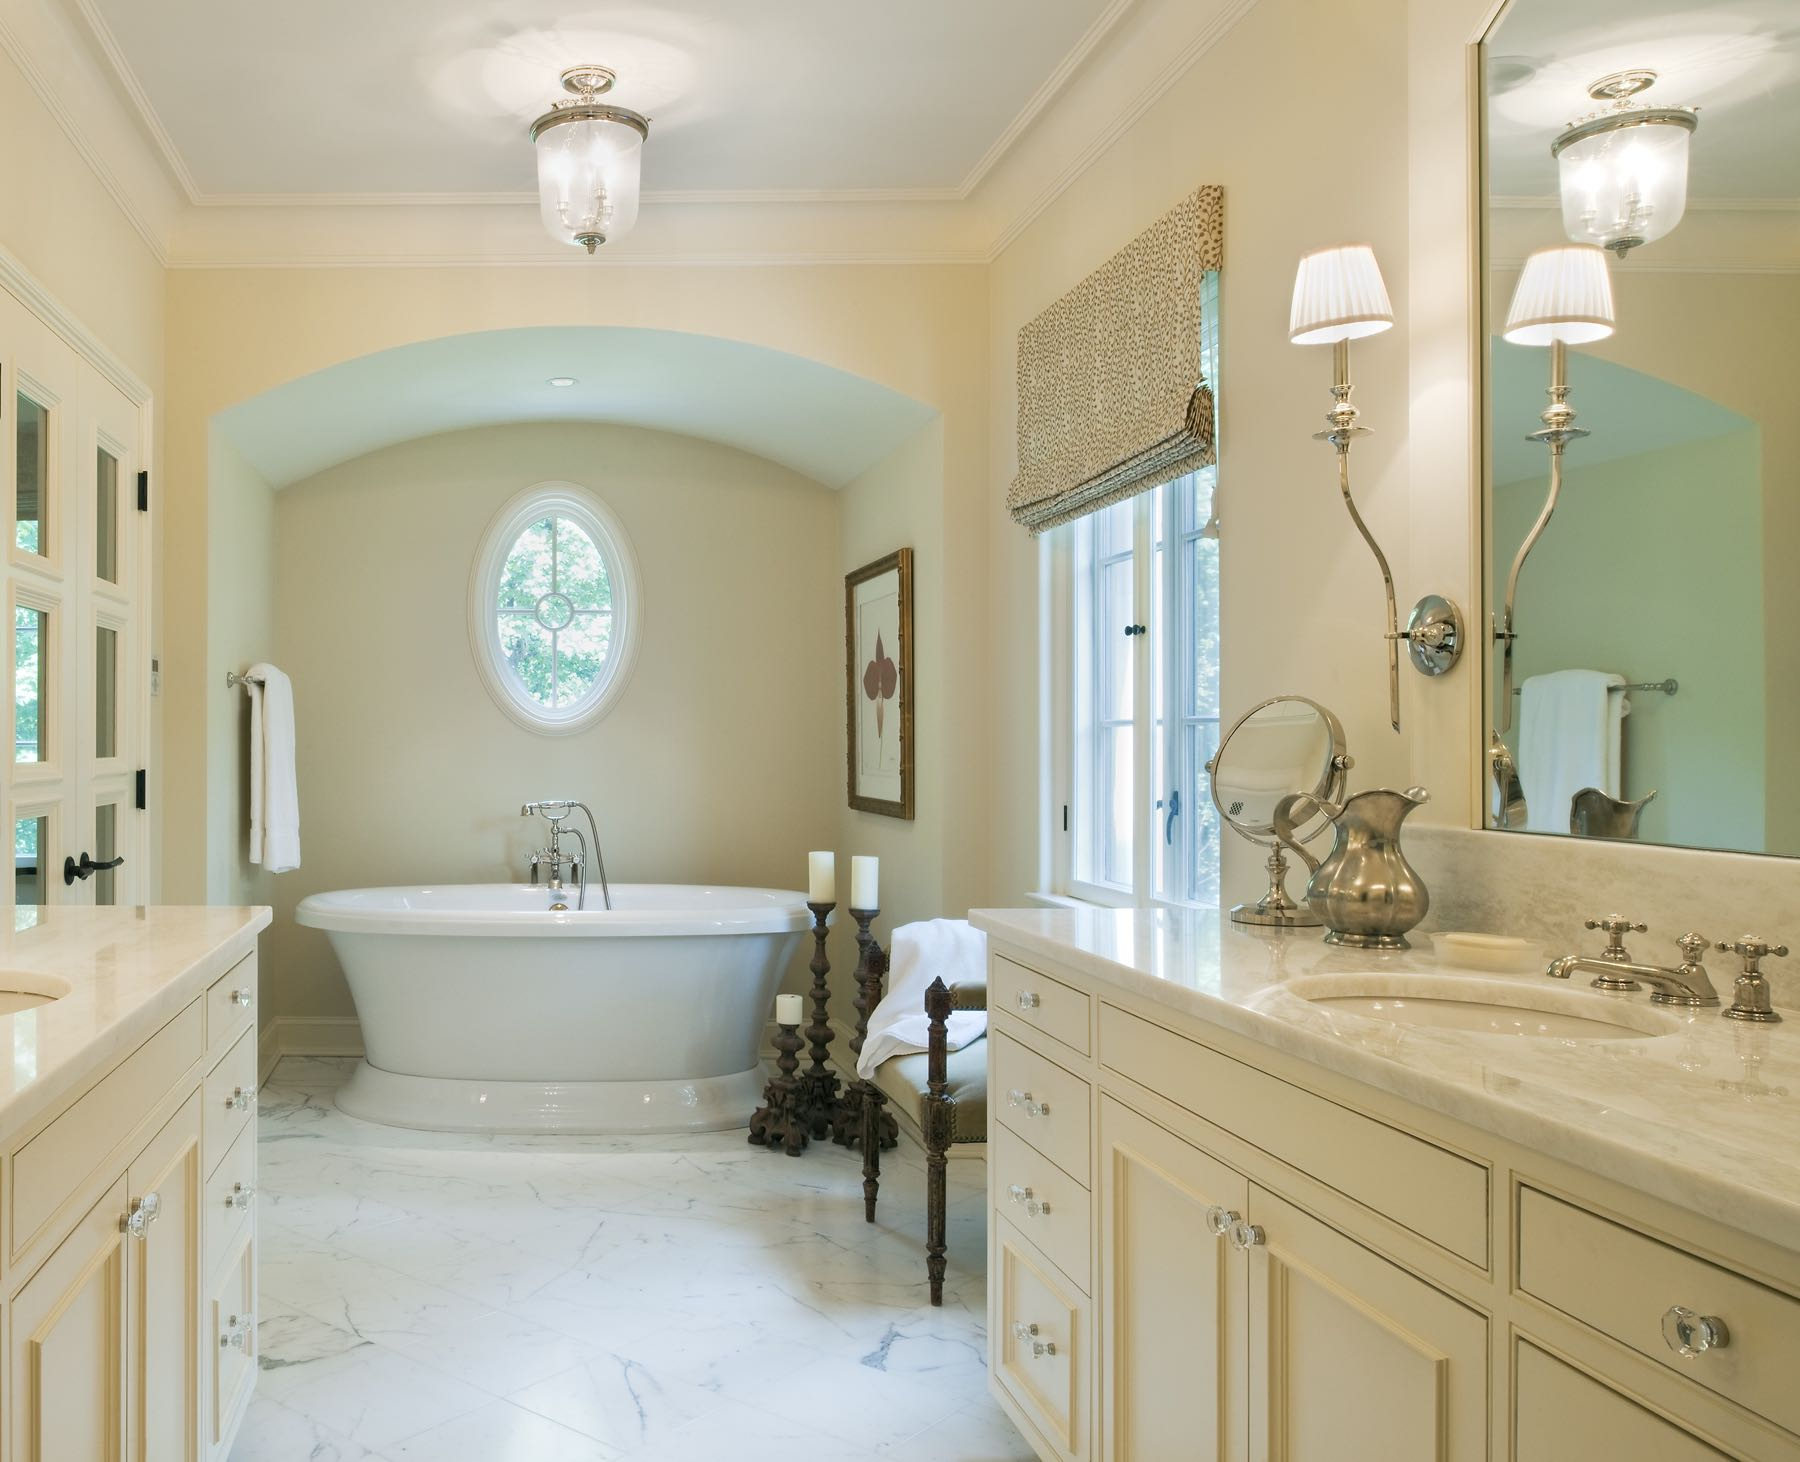 | Work performed while at Barnes Vanze Architects | Hoachlander Davis Photography